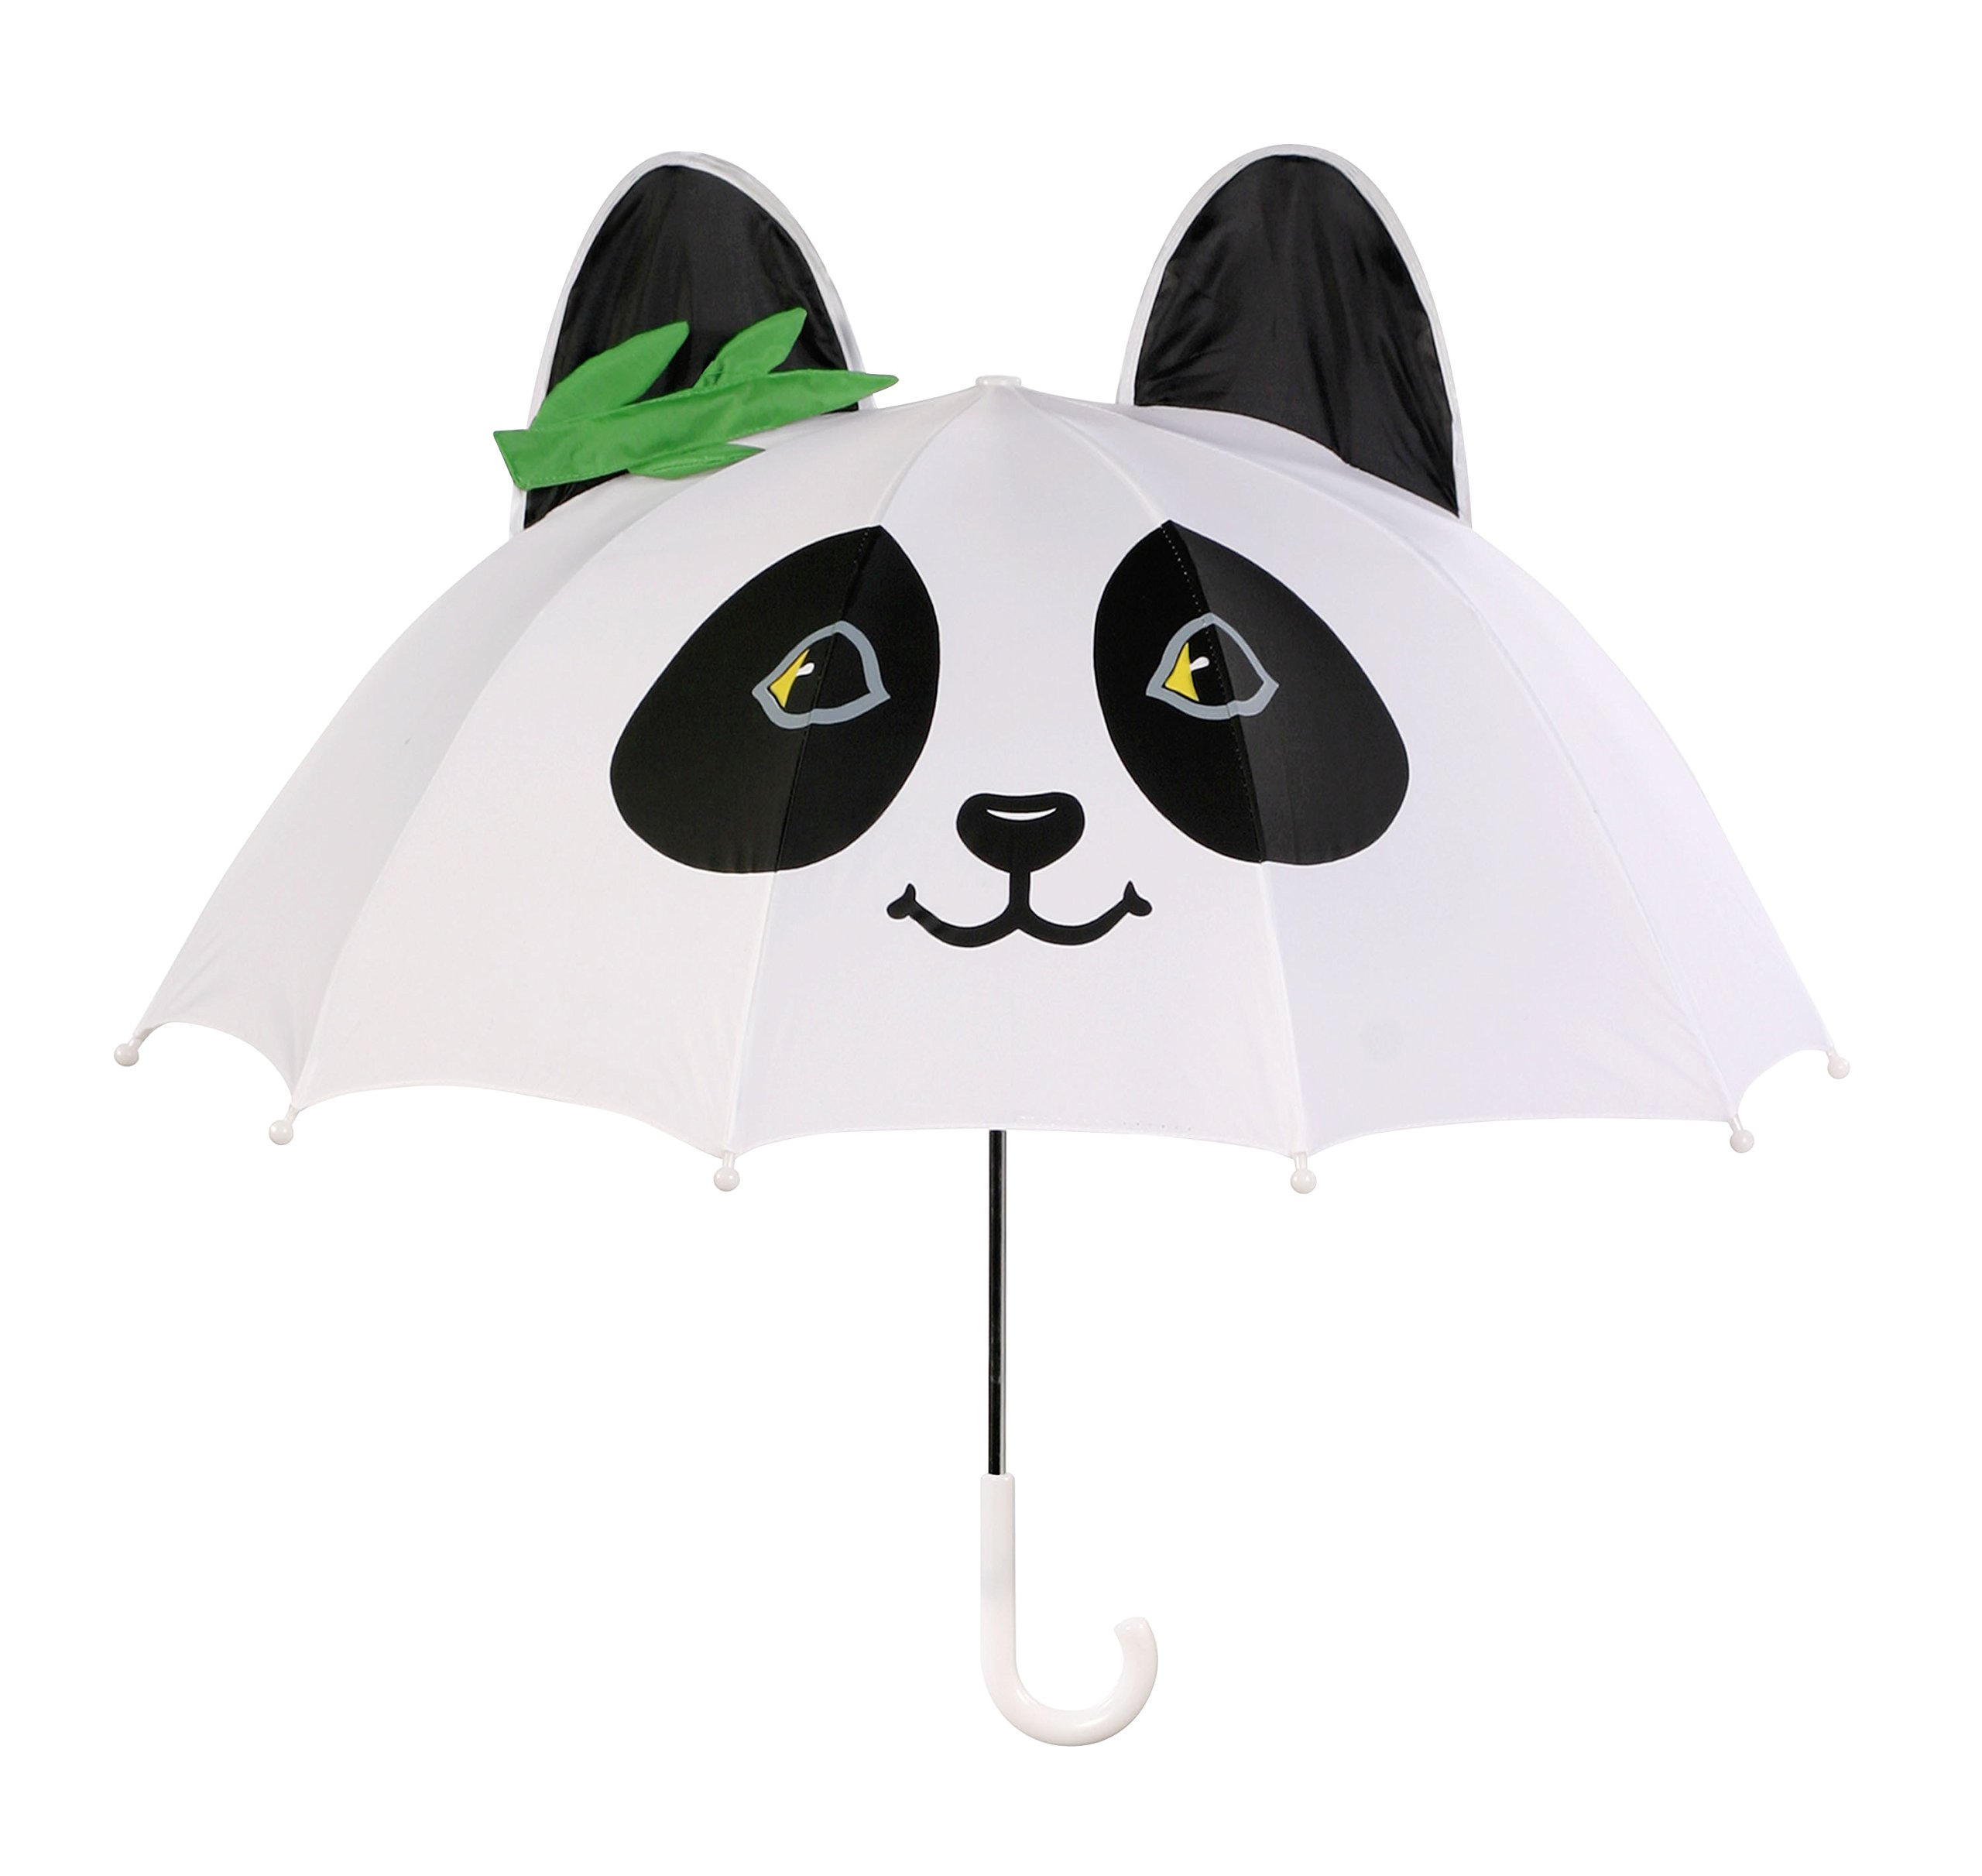 Kidorable White Panda Umbrella With Fun Pop-Out Ears and Bamboo One Size